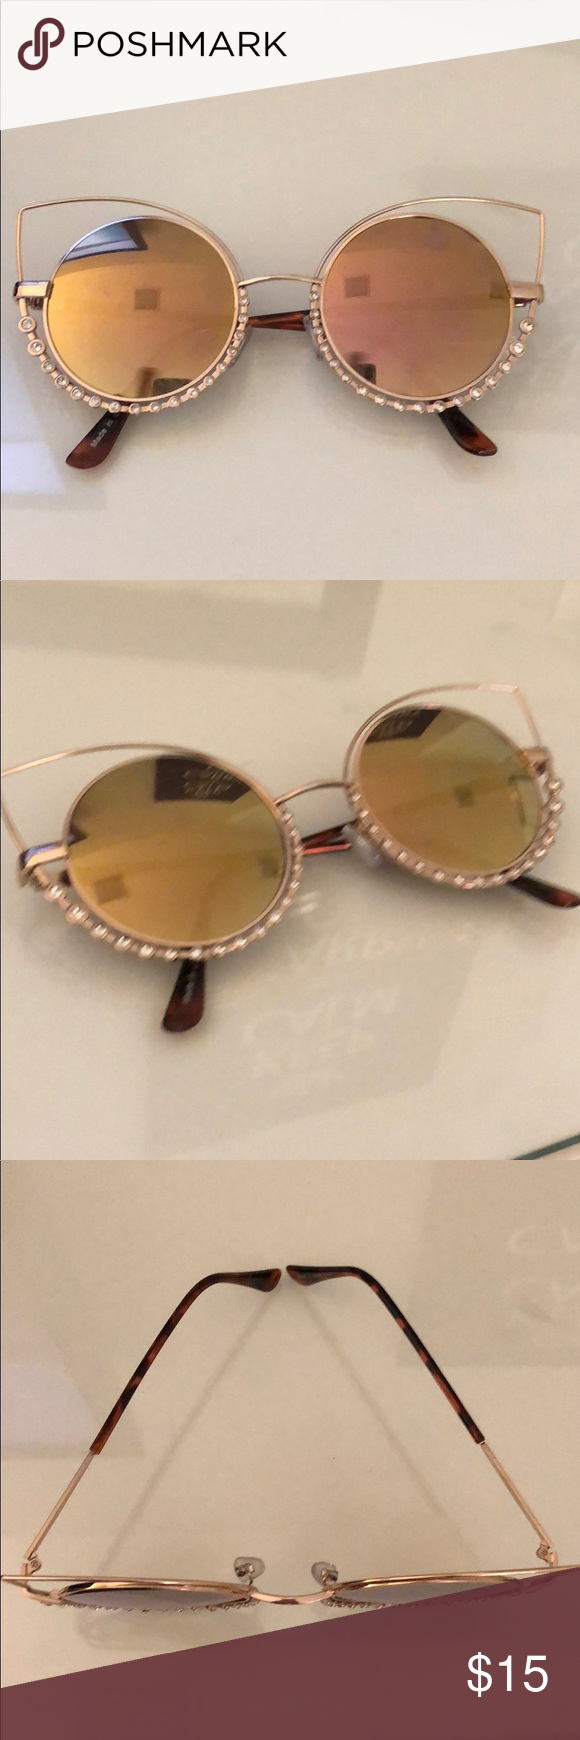 0266d268bd Forever 21 Hippie sunglasses Perfect for summer Forever 21 Accessories  Sunglasses